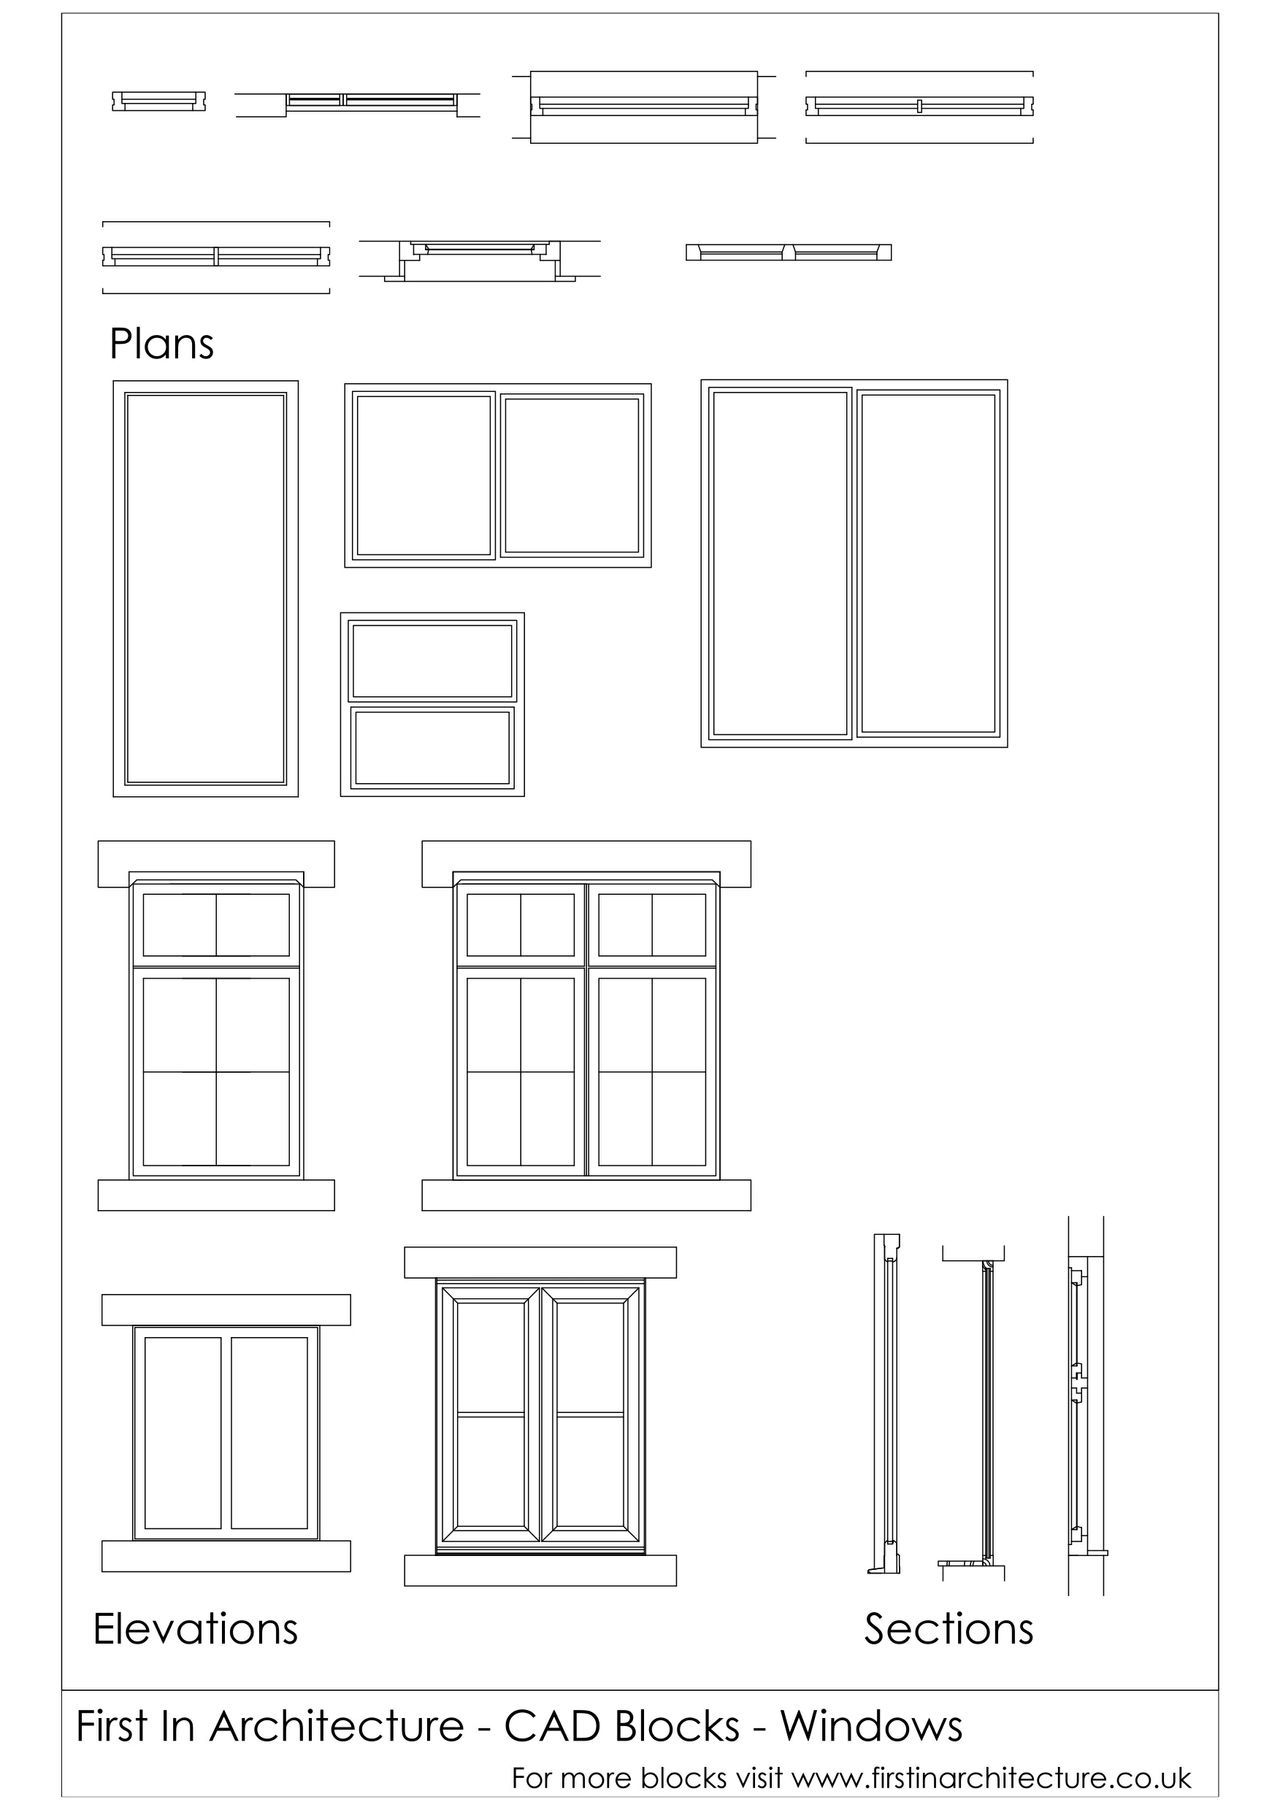 Elevation Plan Template : Cad blocks windows pinterest window architecture and